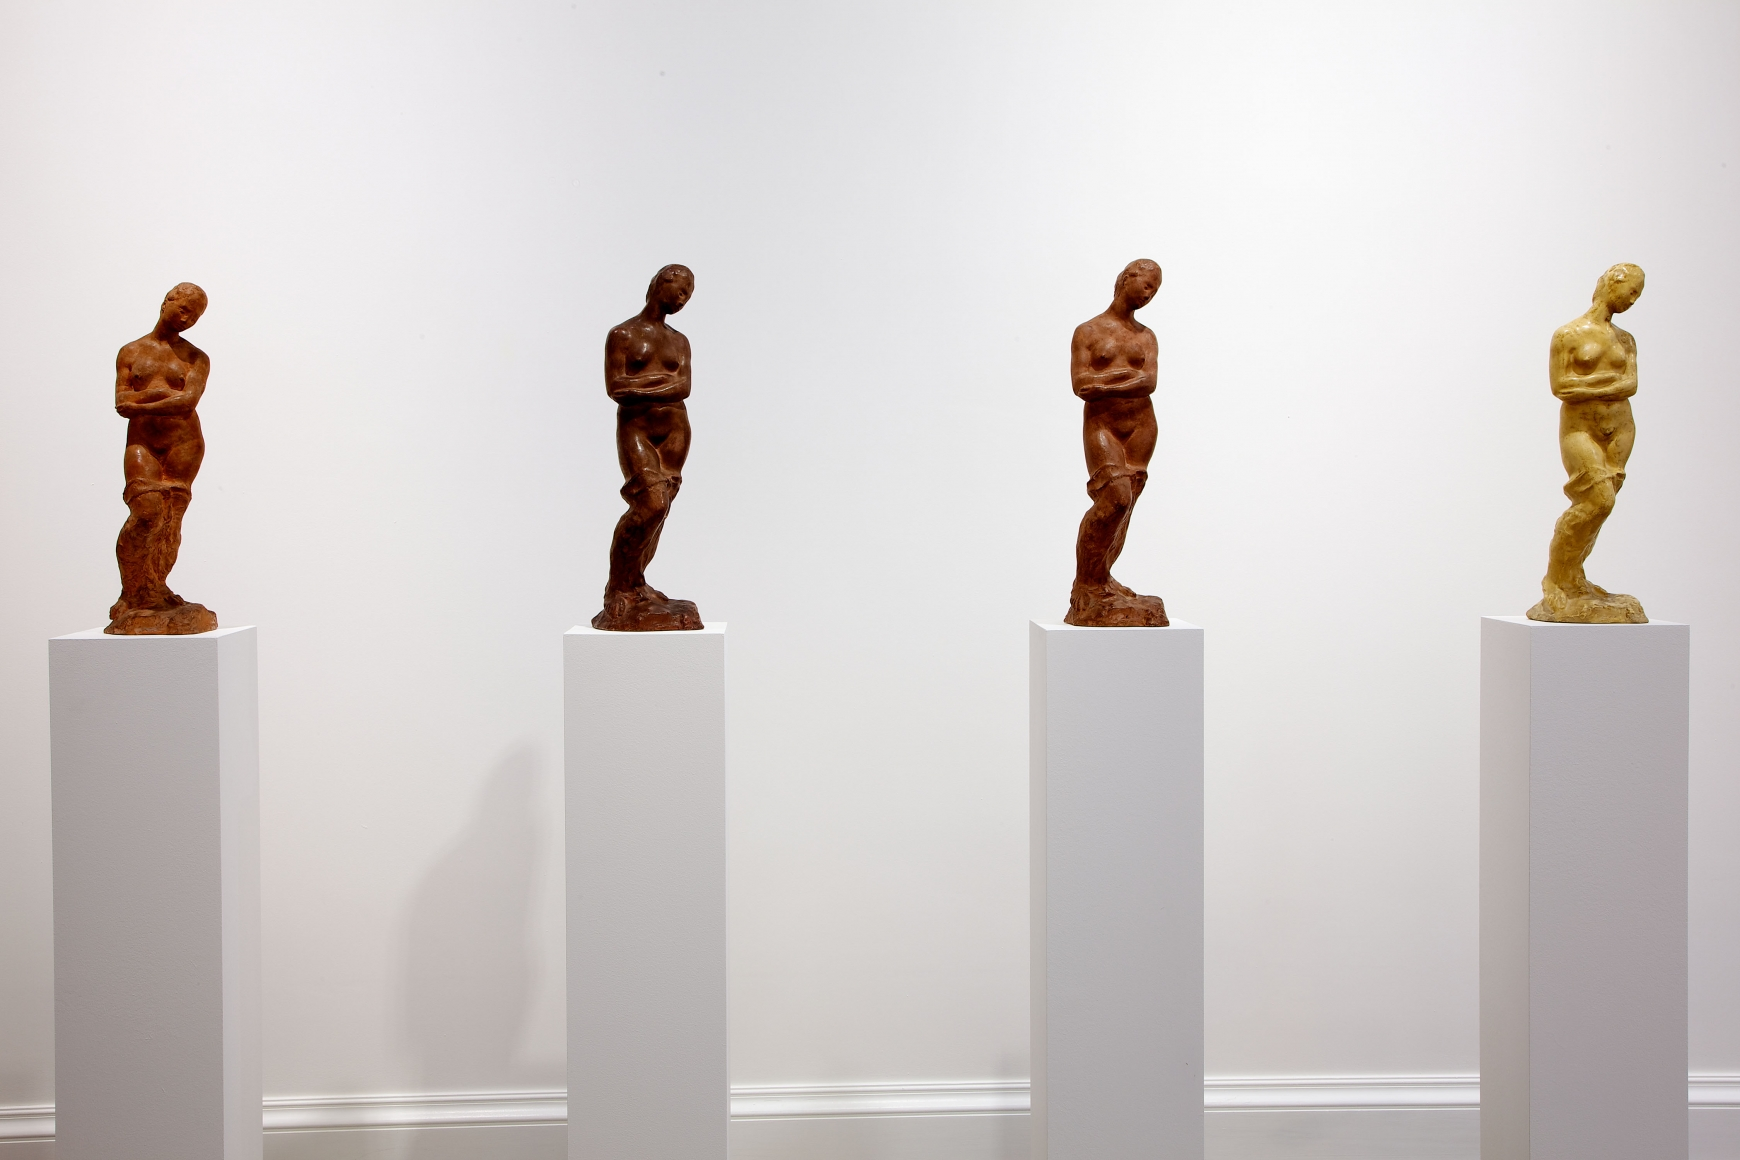 WILHELM LEHMBRUCK Sculpture and Works on Paper 21 March through 25 May 2013 MAYFAIR, LONDON, Installation View 17